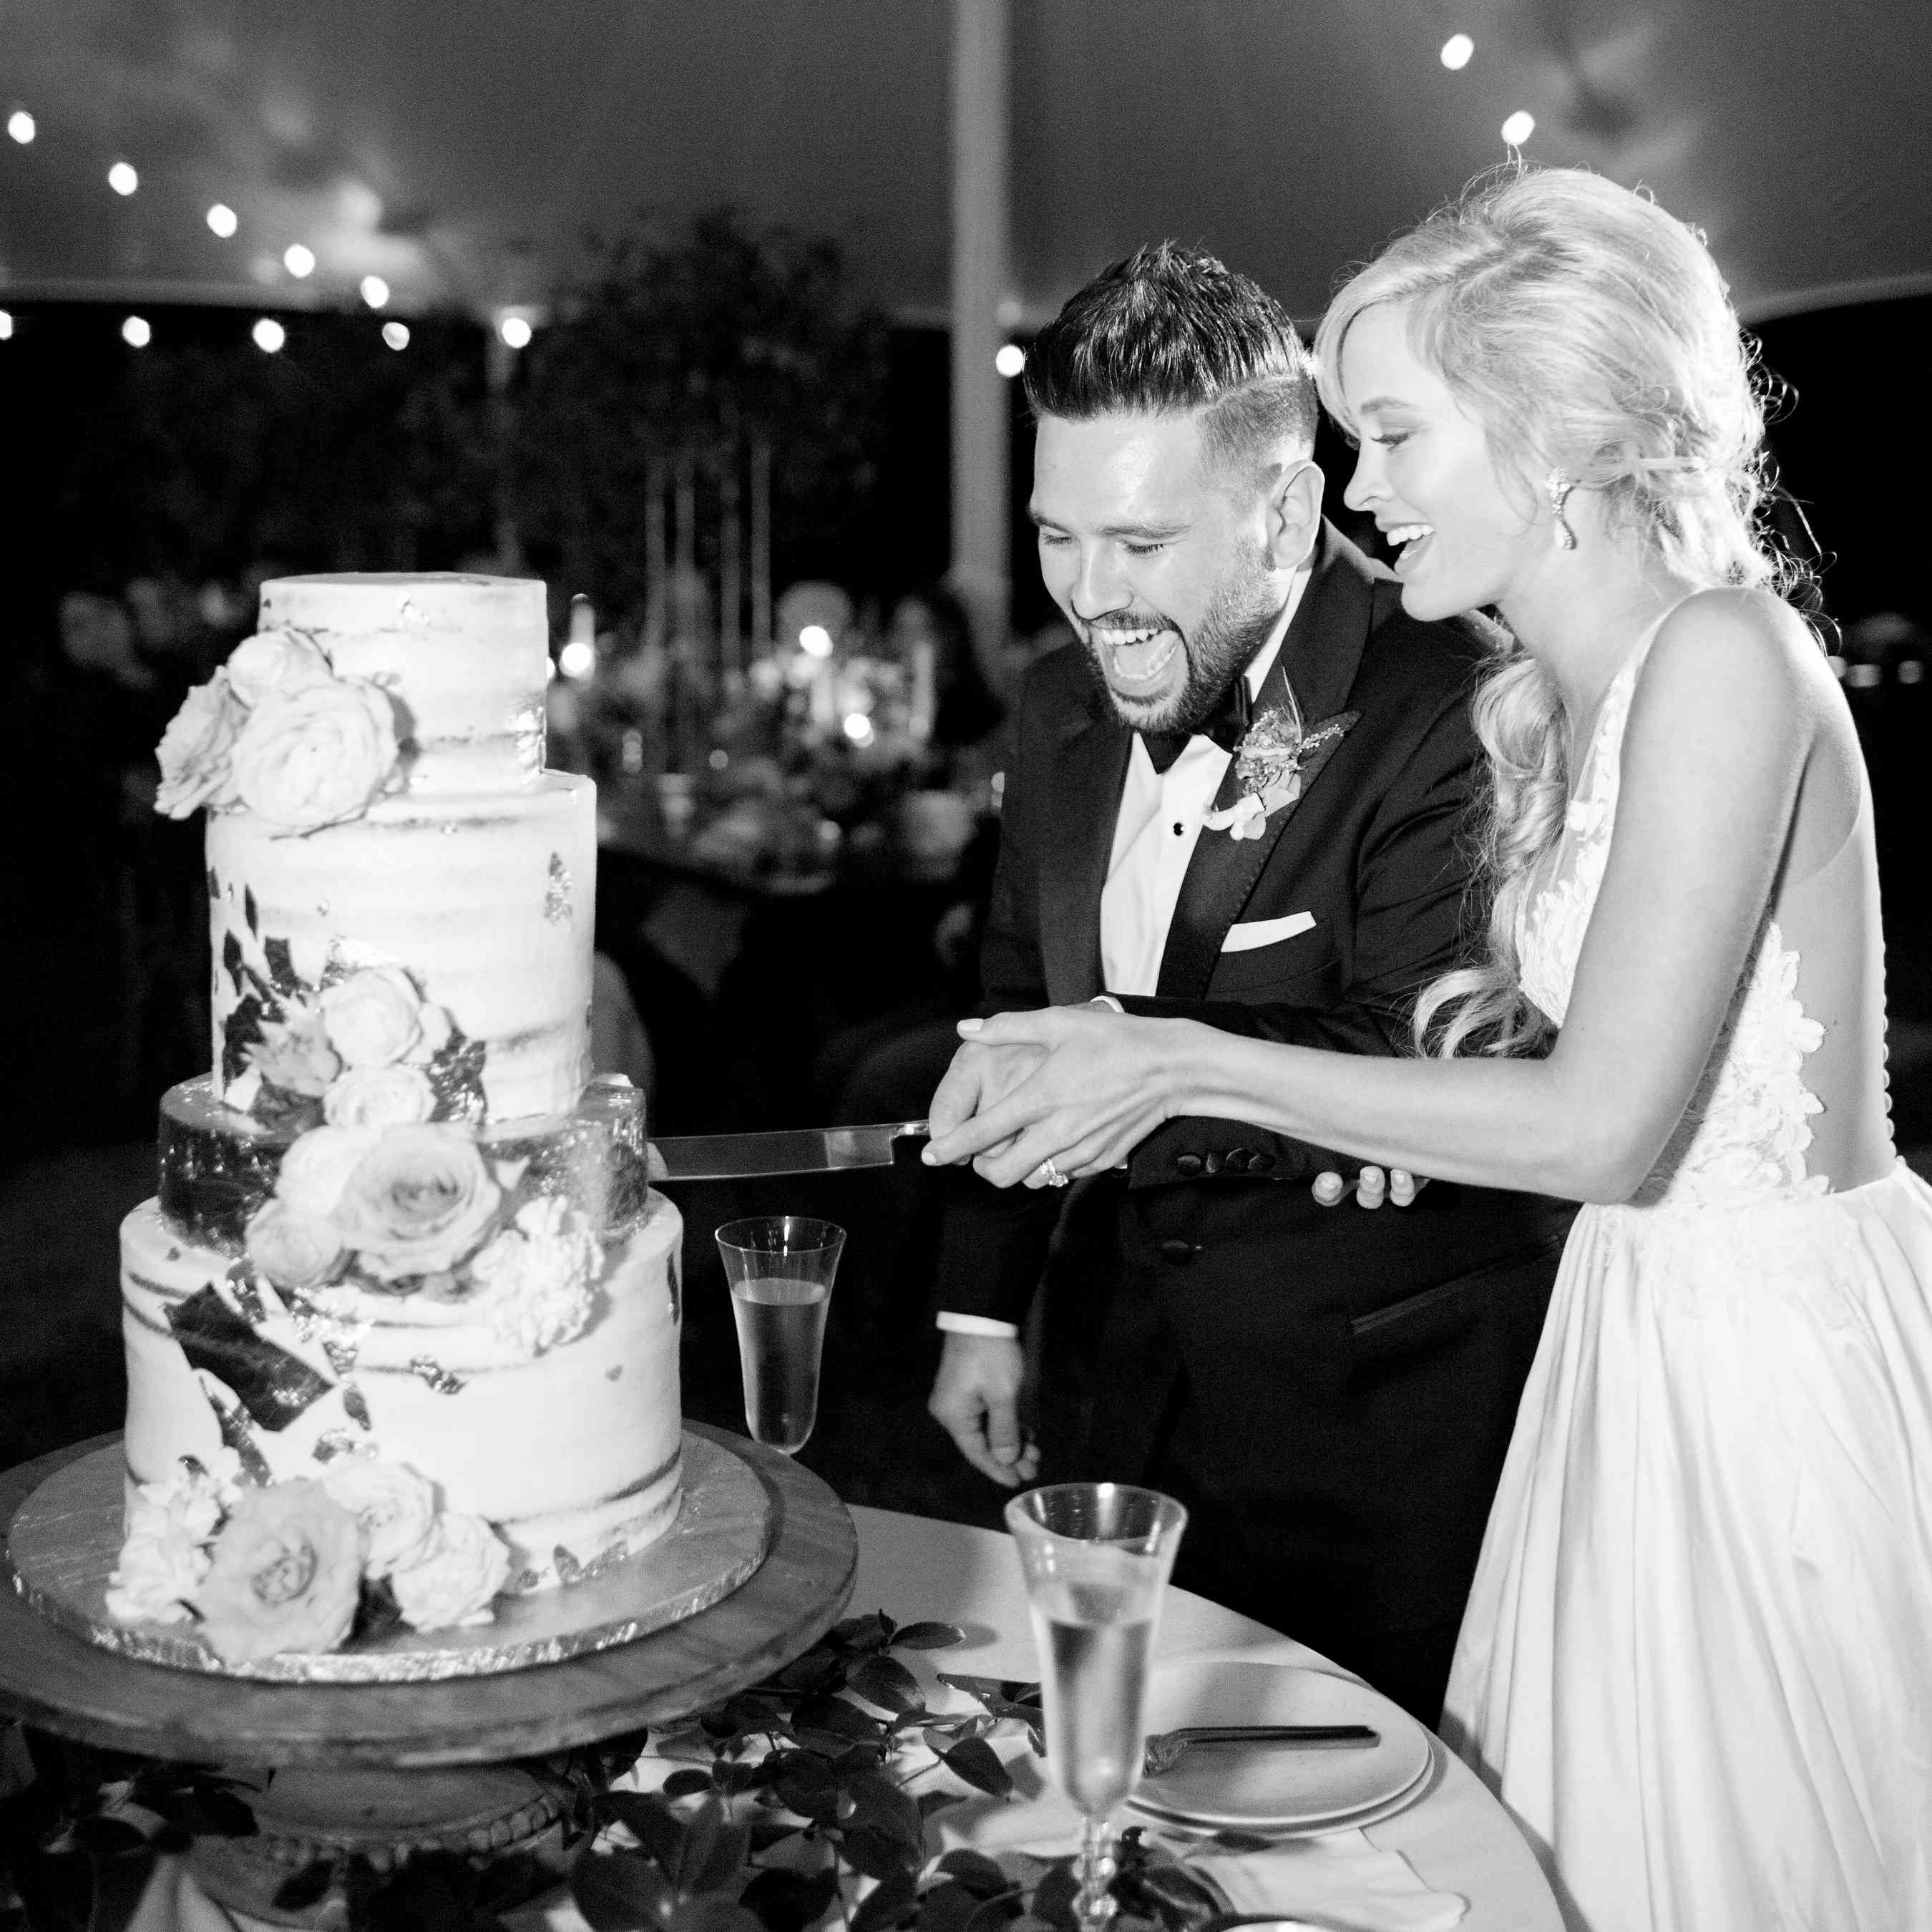 <p>Bride and groom cutting wedding cake</p><br><br>